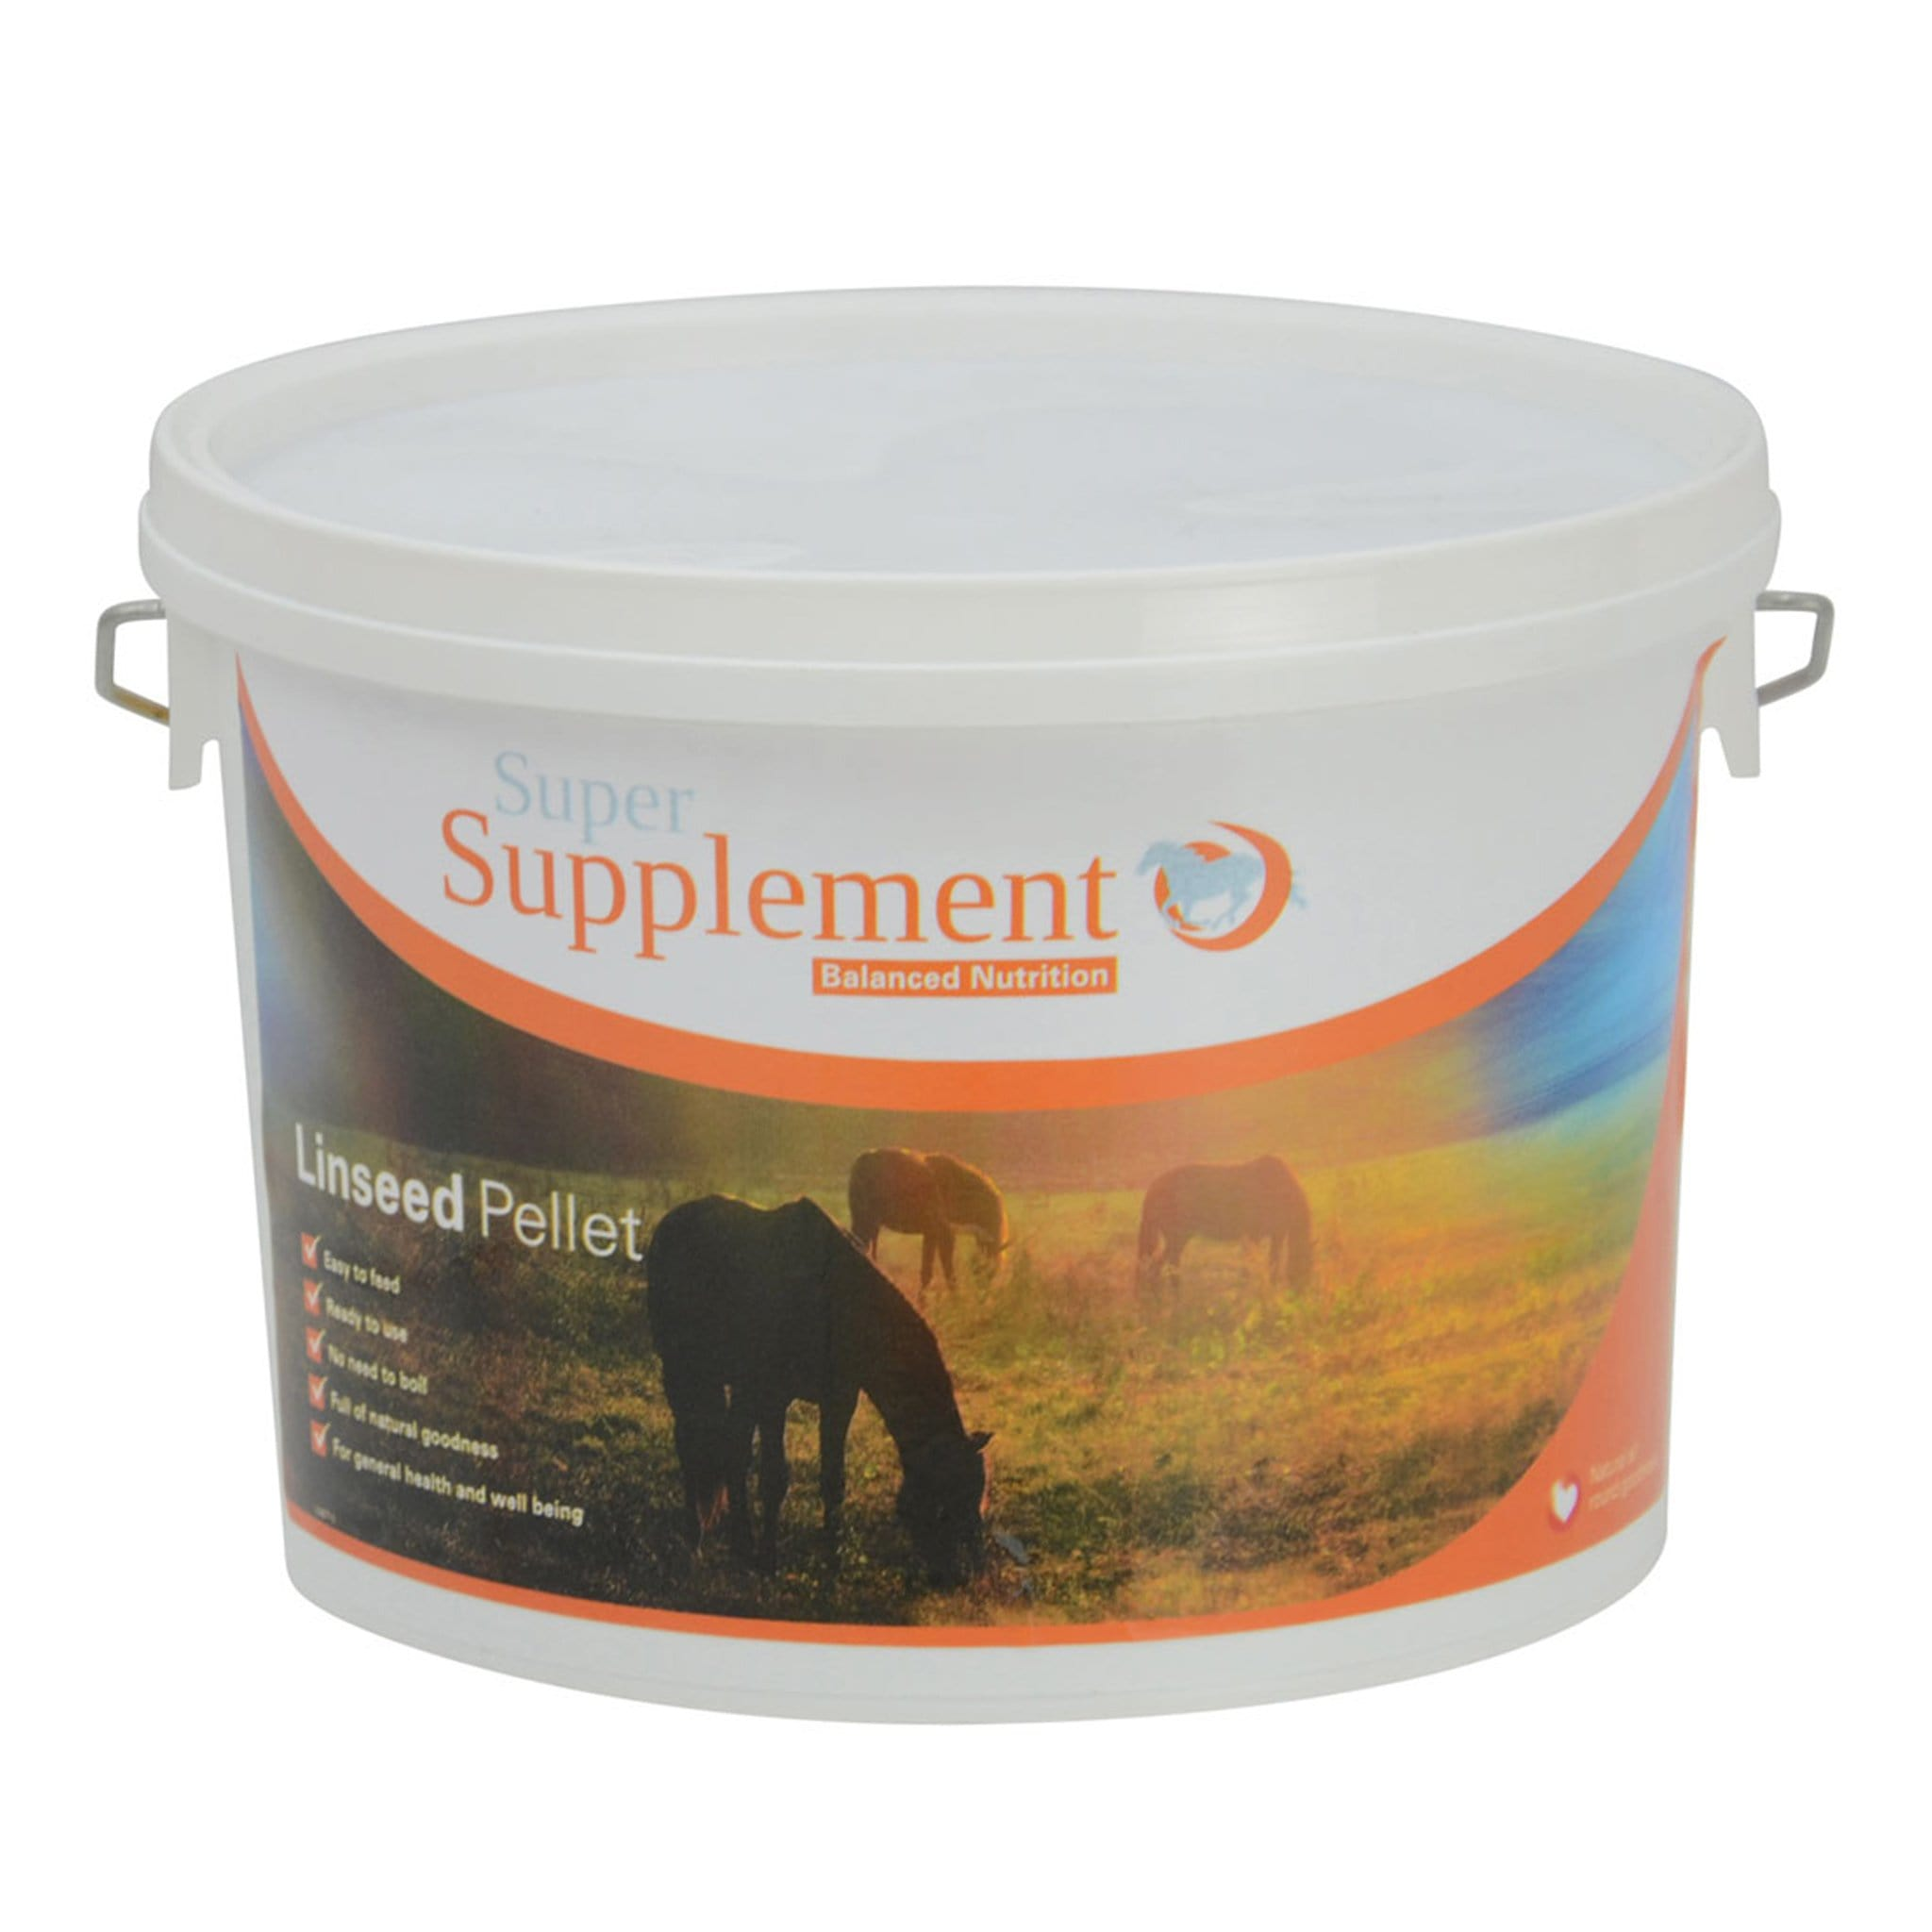 Super Supplement Linseed Pellet 20251 2Kg